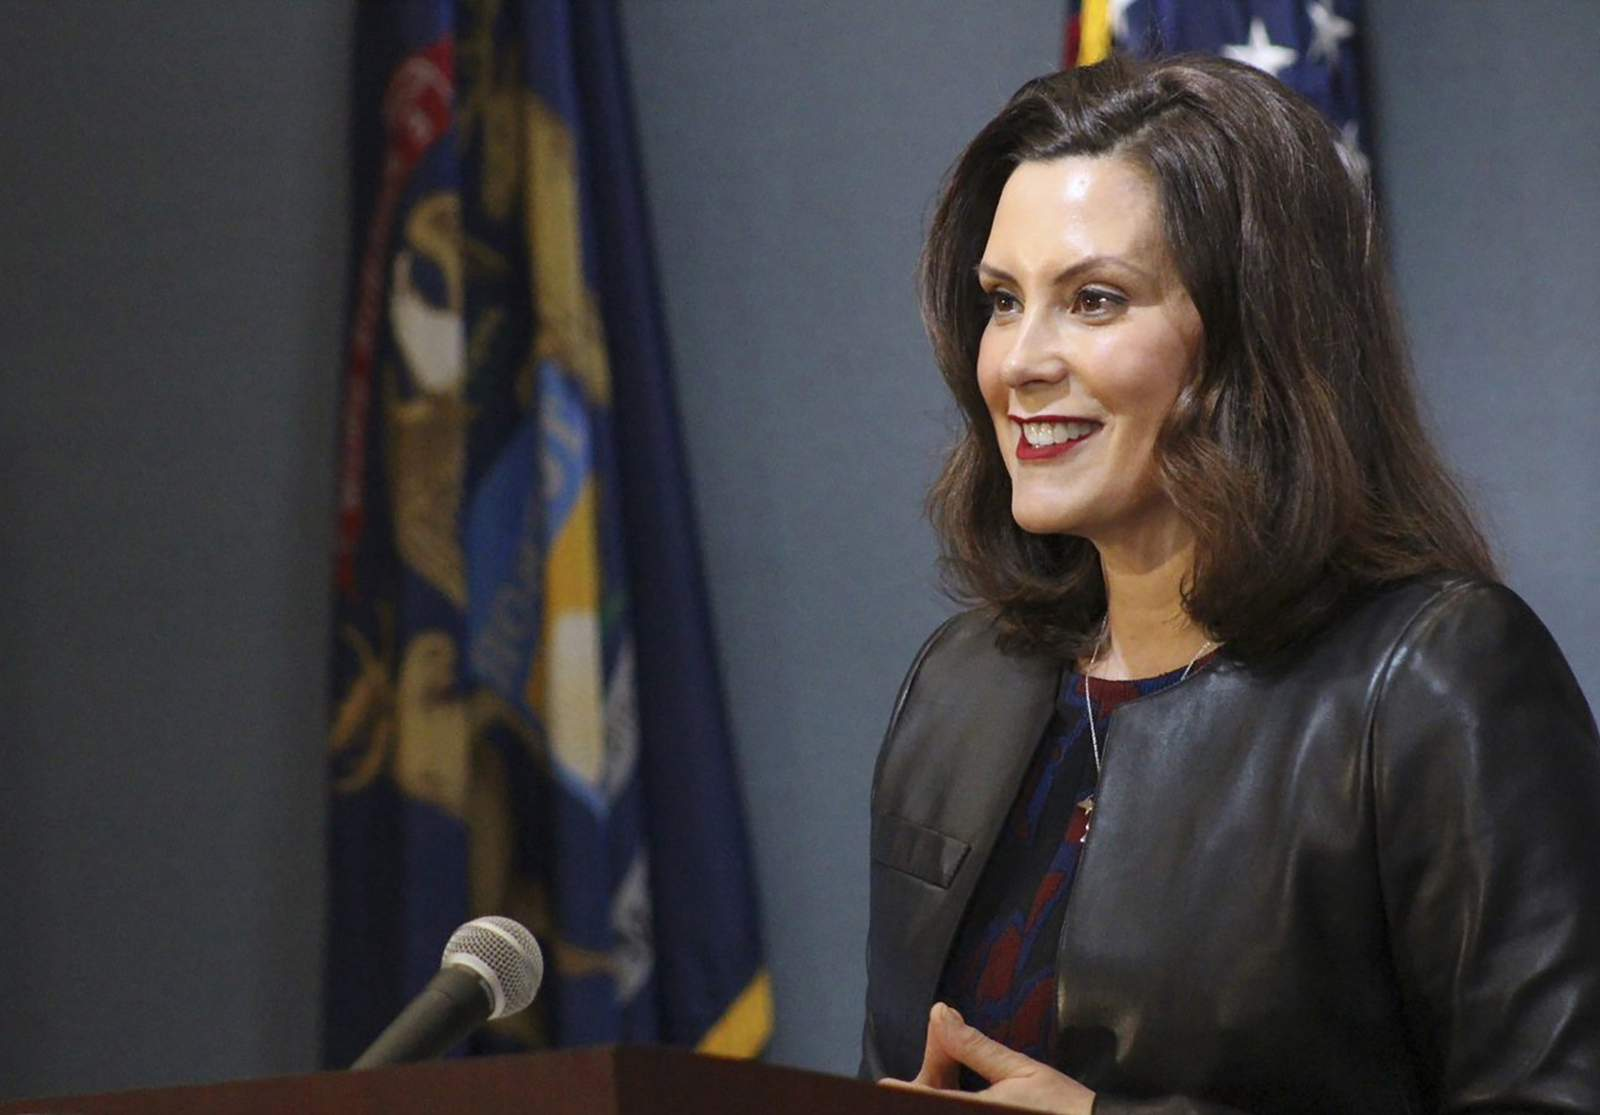 Michigan Gov Gretchen Whitmer Says Gatherings Of 10 People Could Be Allowed On May 28